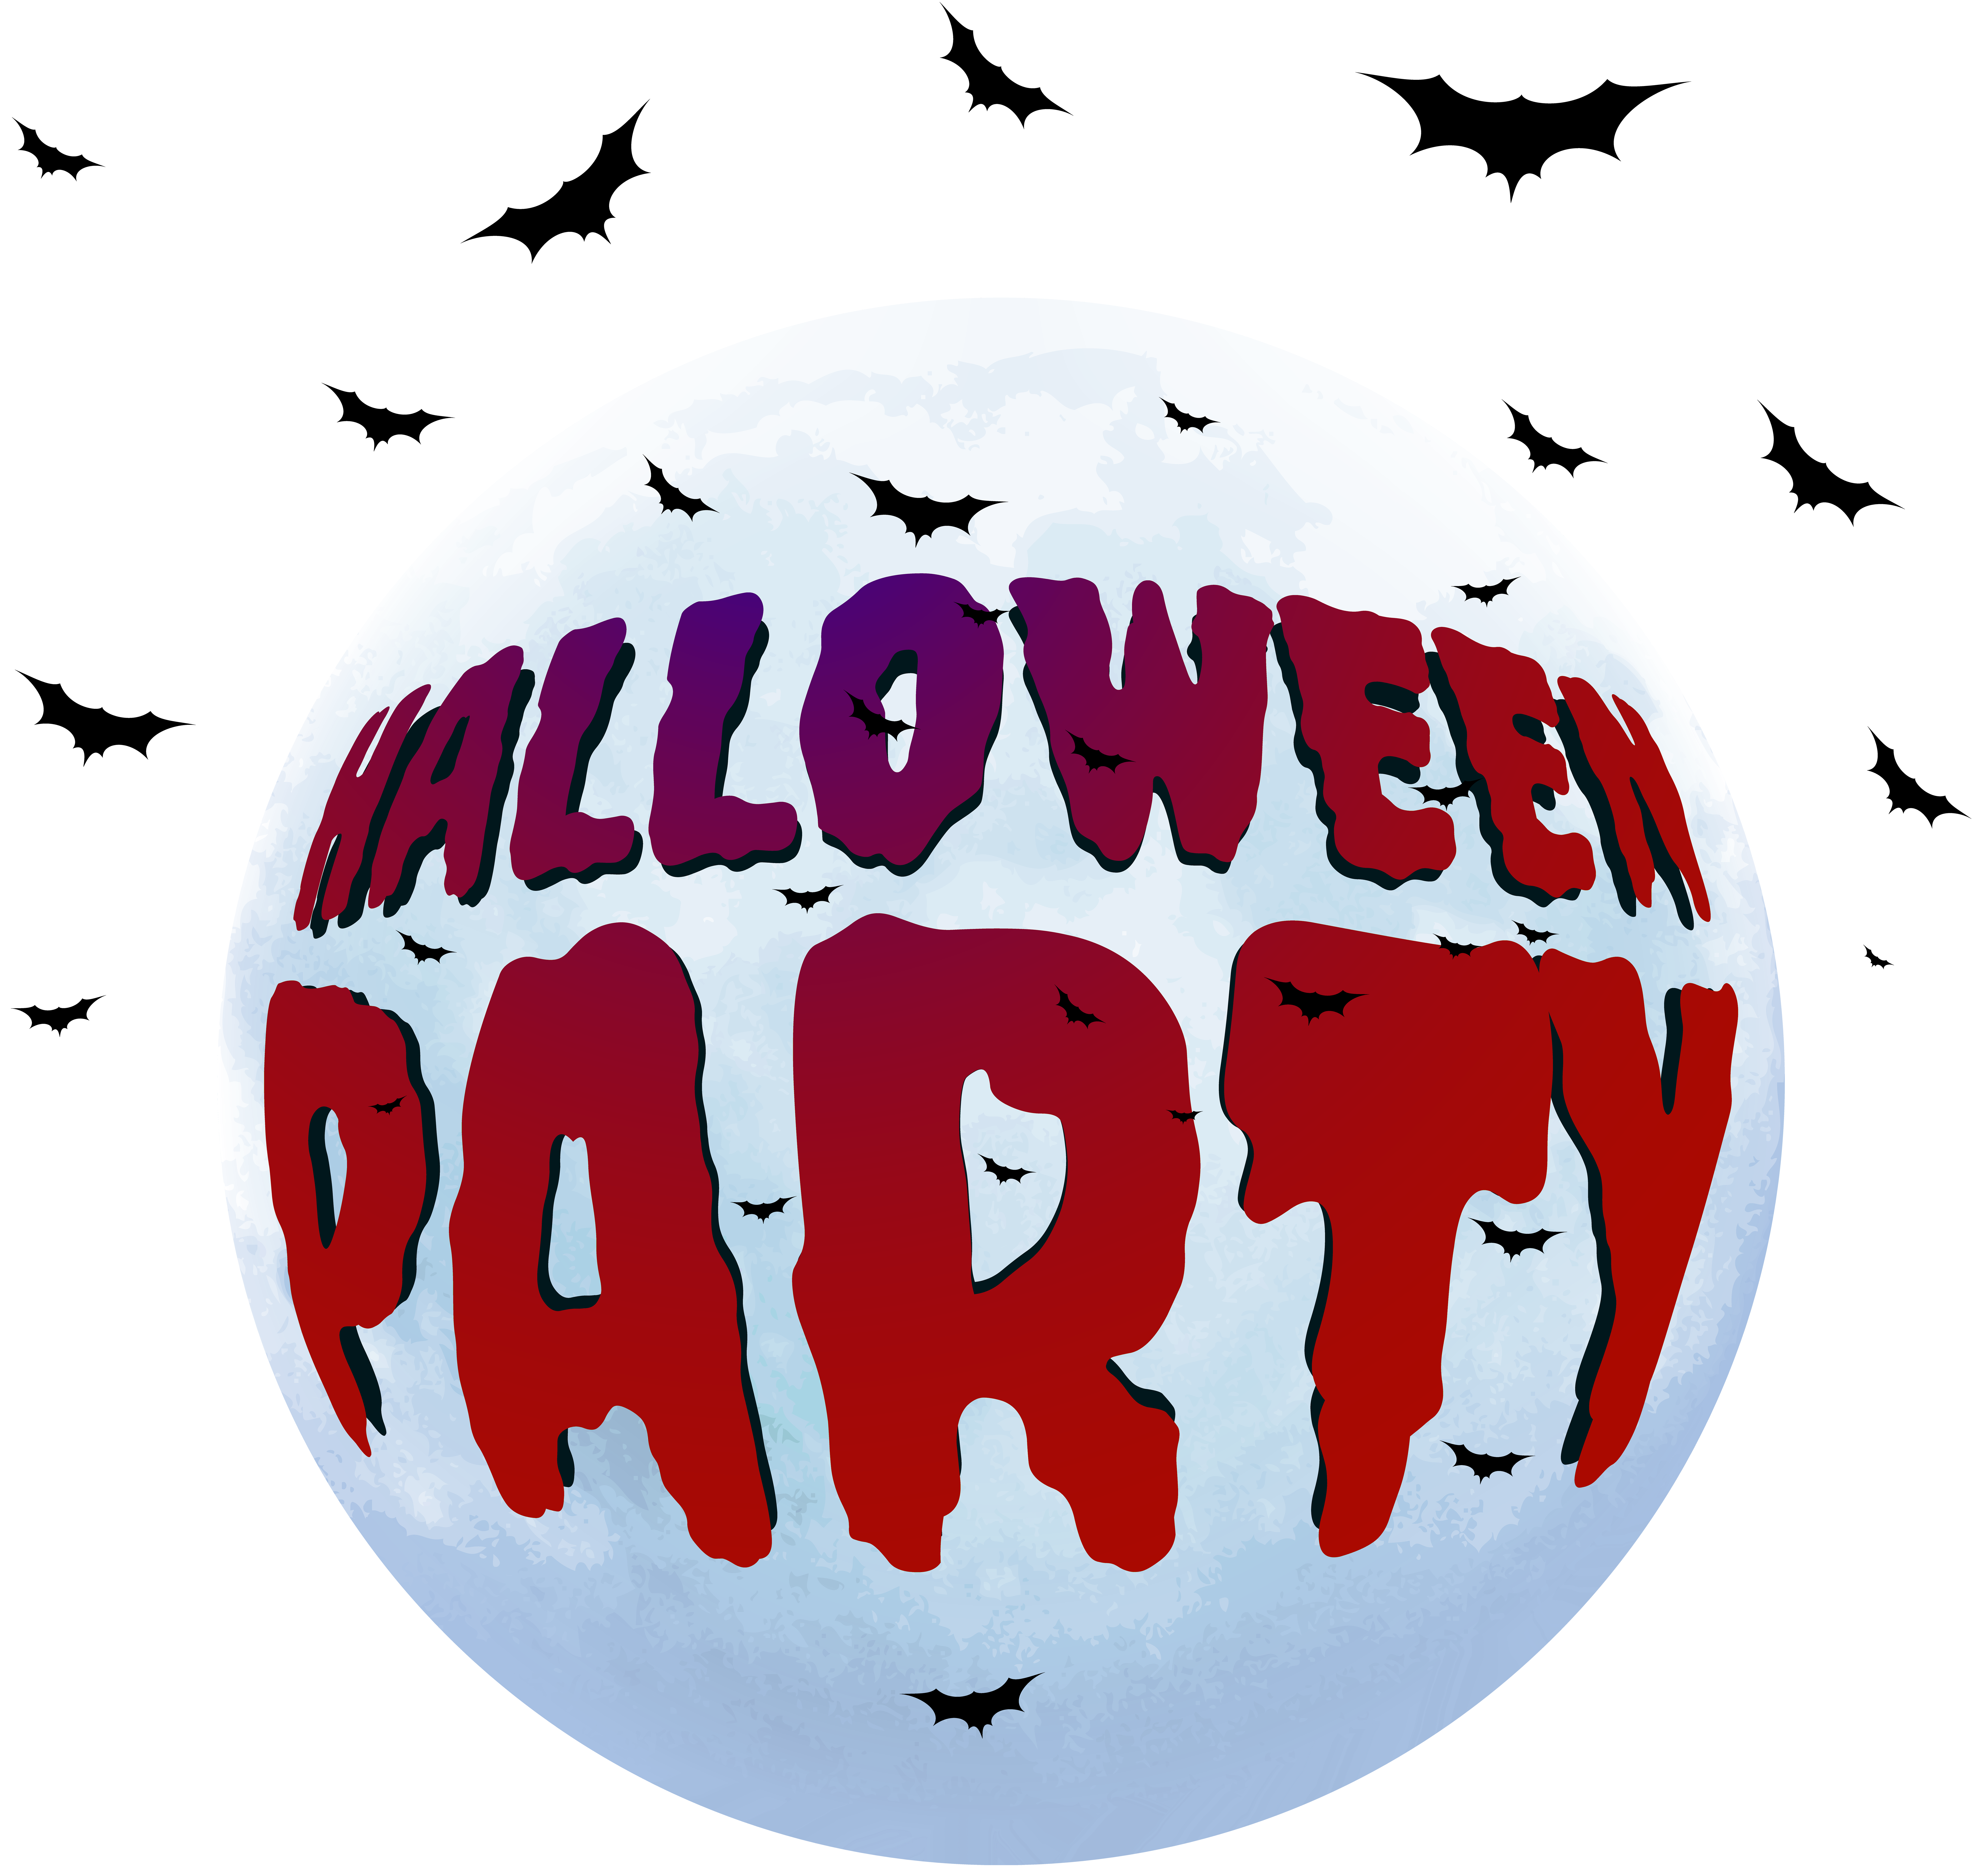 Halloween party free clipart graphic free library Halloween Party PNG Clip Art Image | Gallery Yopriceville - High ... graphic free library